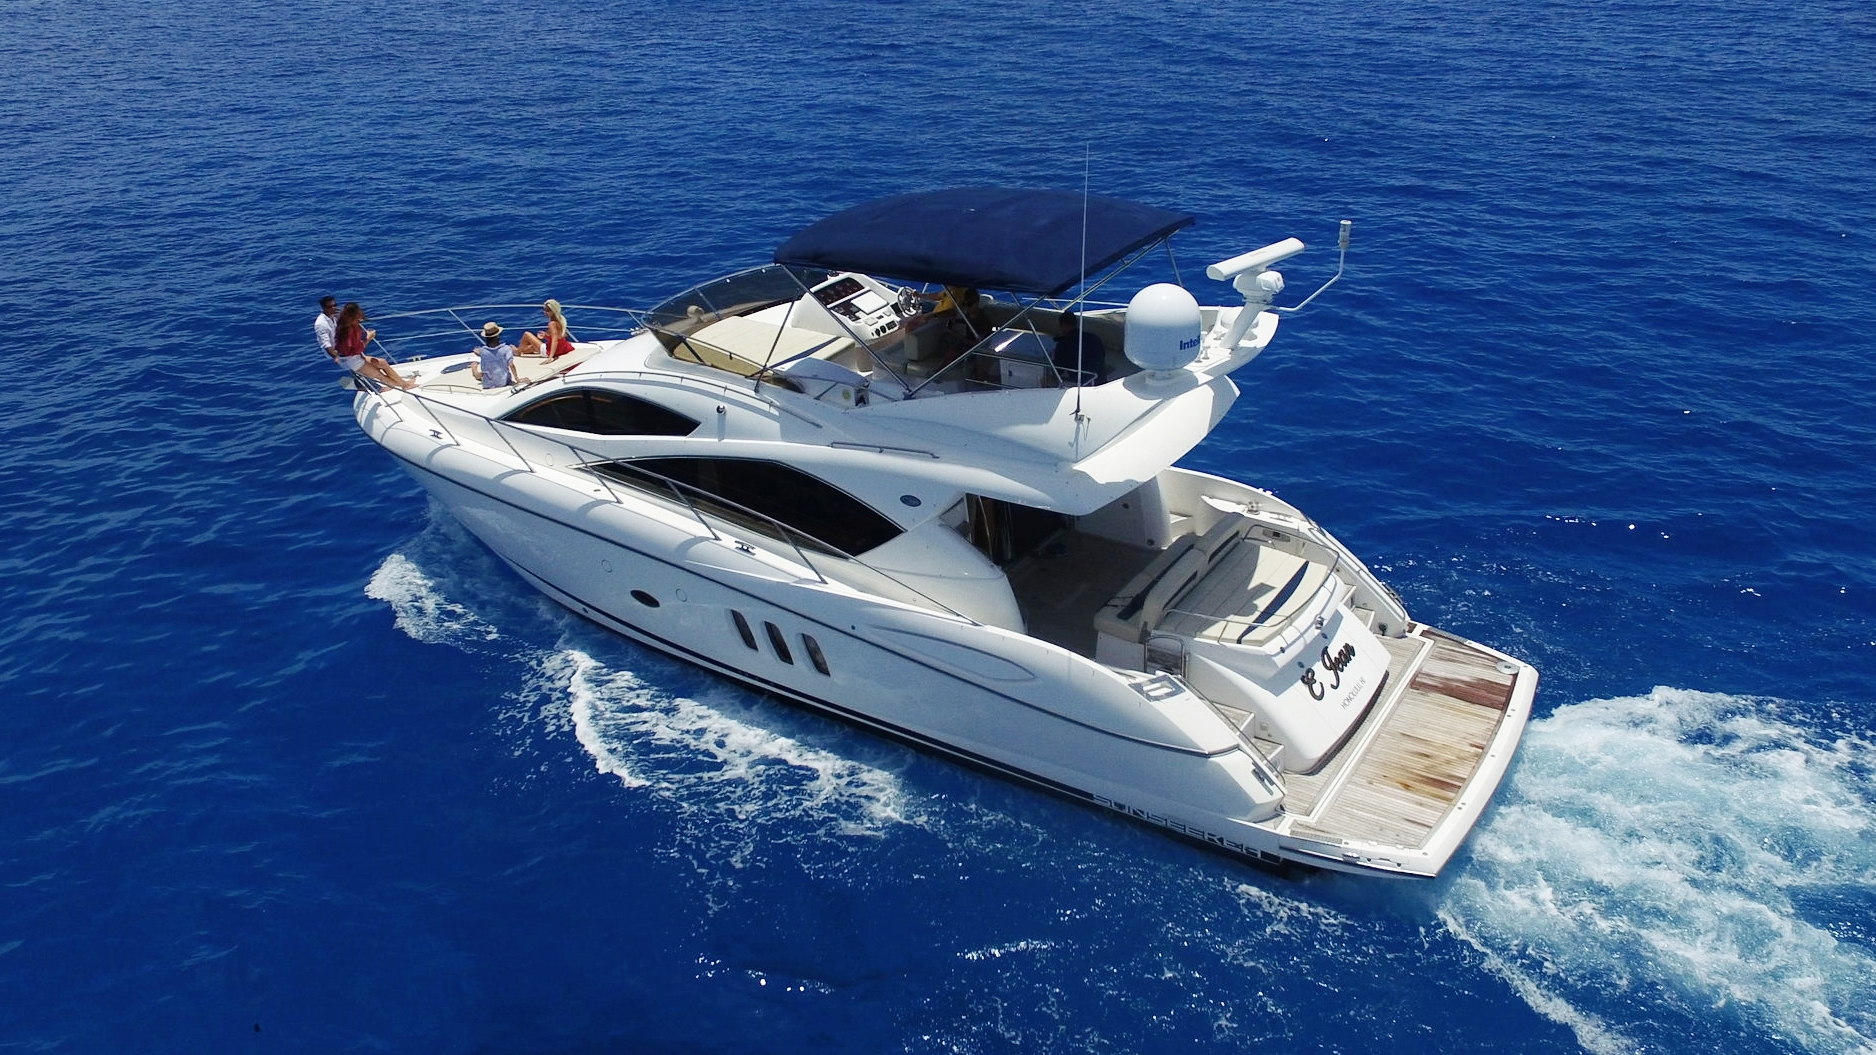 E Jean - Sunseeker 55' Manhattan- For those seeking to bump the expirience up to the next level. This Sunseeker is a great Inter Island and Full Day Charter boat for the Islands